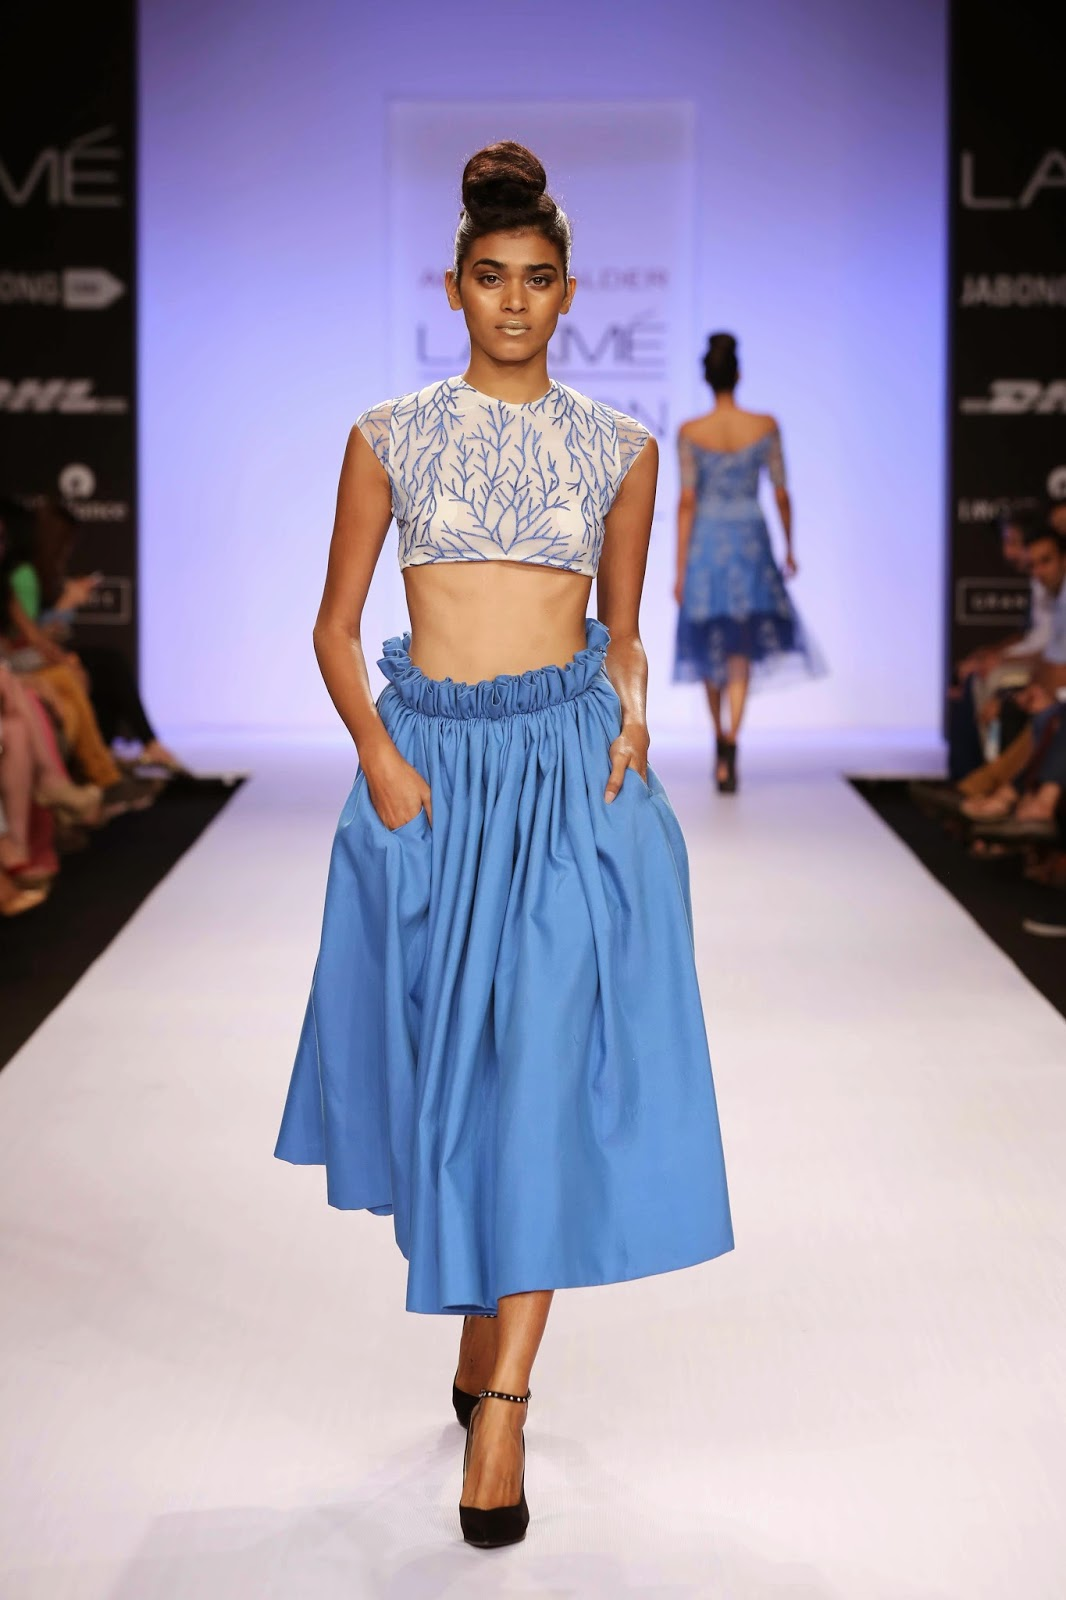 Aimed at dressing up the powerful independent women, the elegantly designed garments had the exquisite Abdul Halder touches giving the outfits that sensual and sexy look to add drama to the collection.